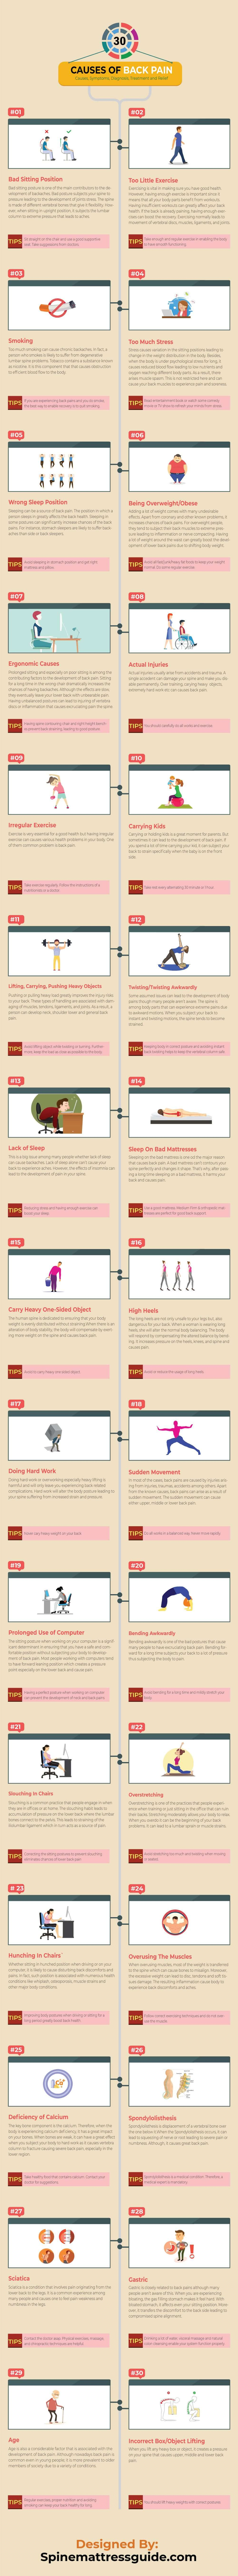 30-Causes-of-Back-Pain-Infographic-galleryr